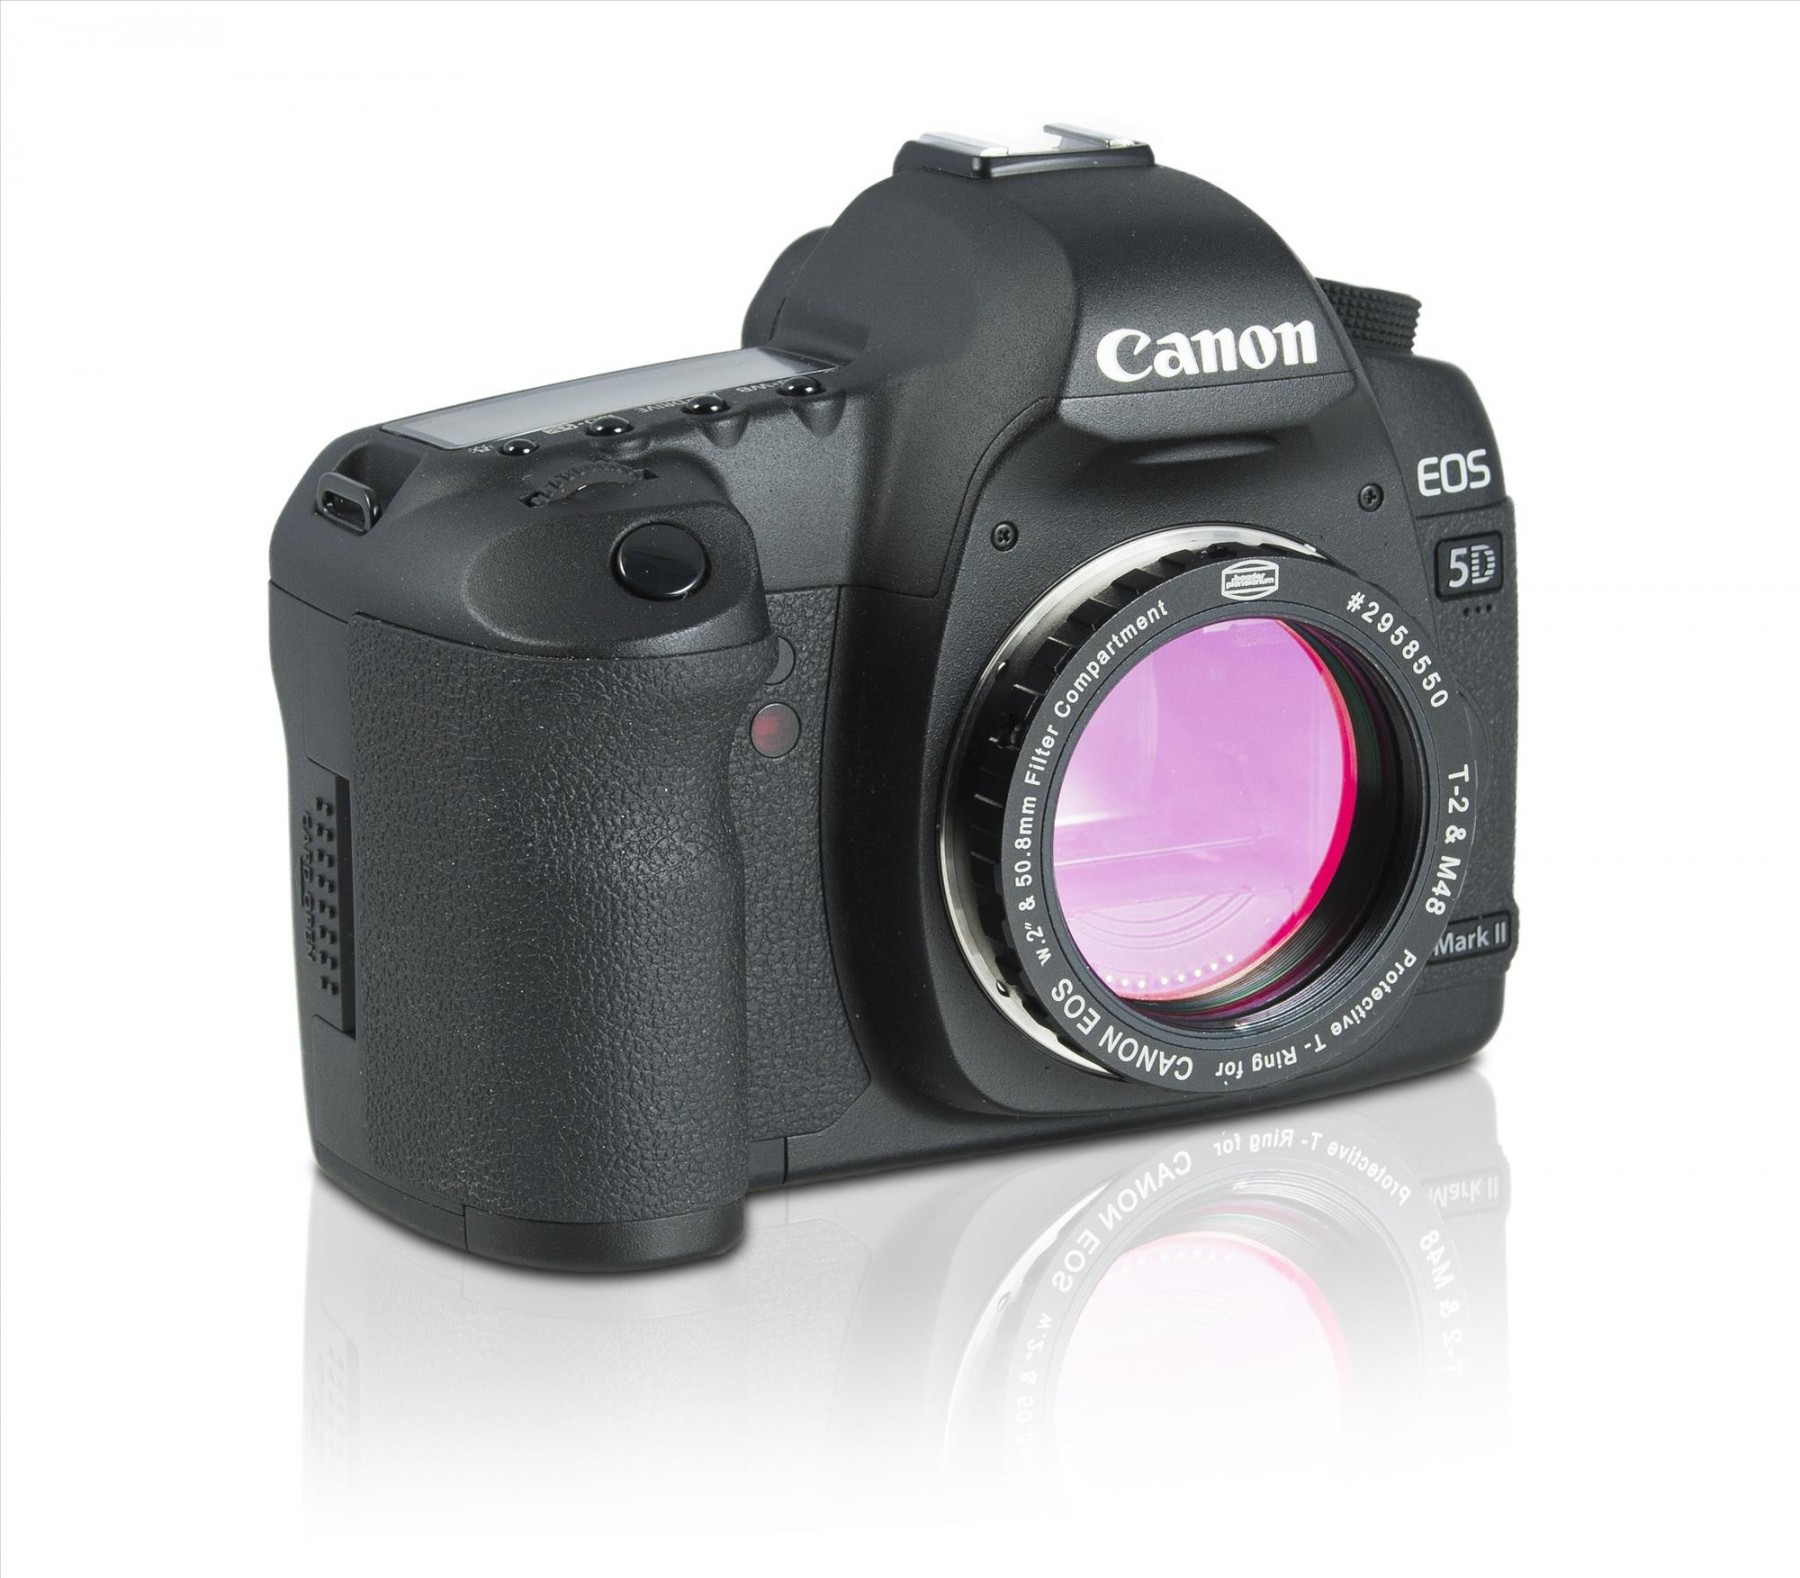 Canon EOS Protective T-Ring with additional filter. Camera not included